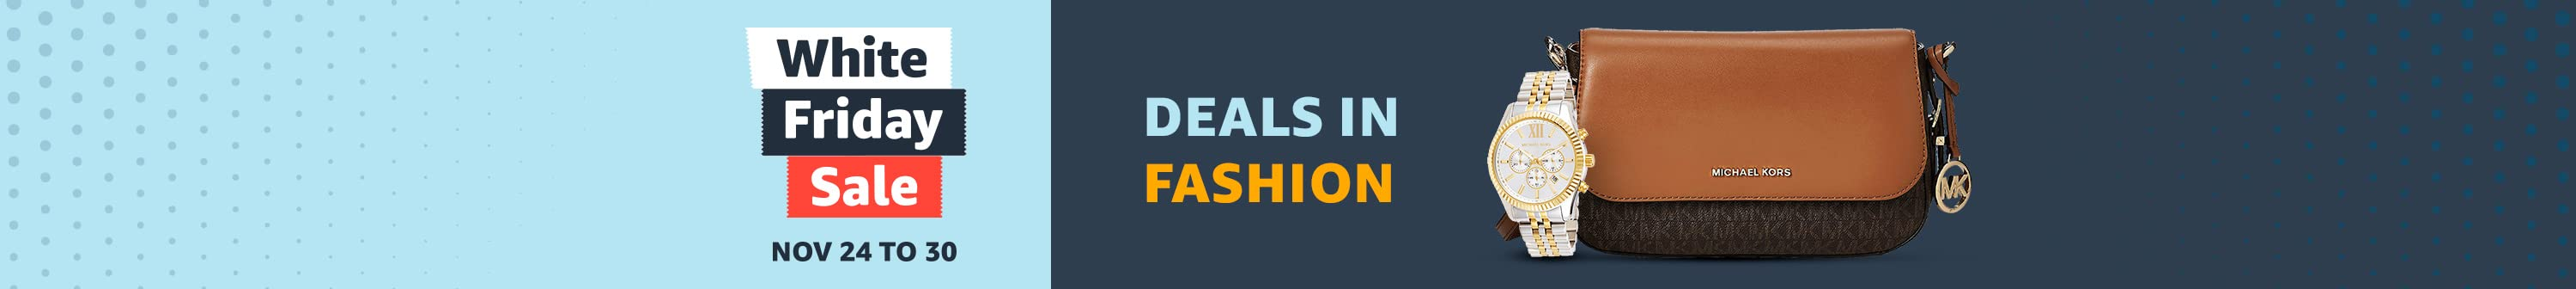 Amazon Fashion Sales and Deals